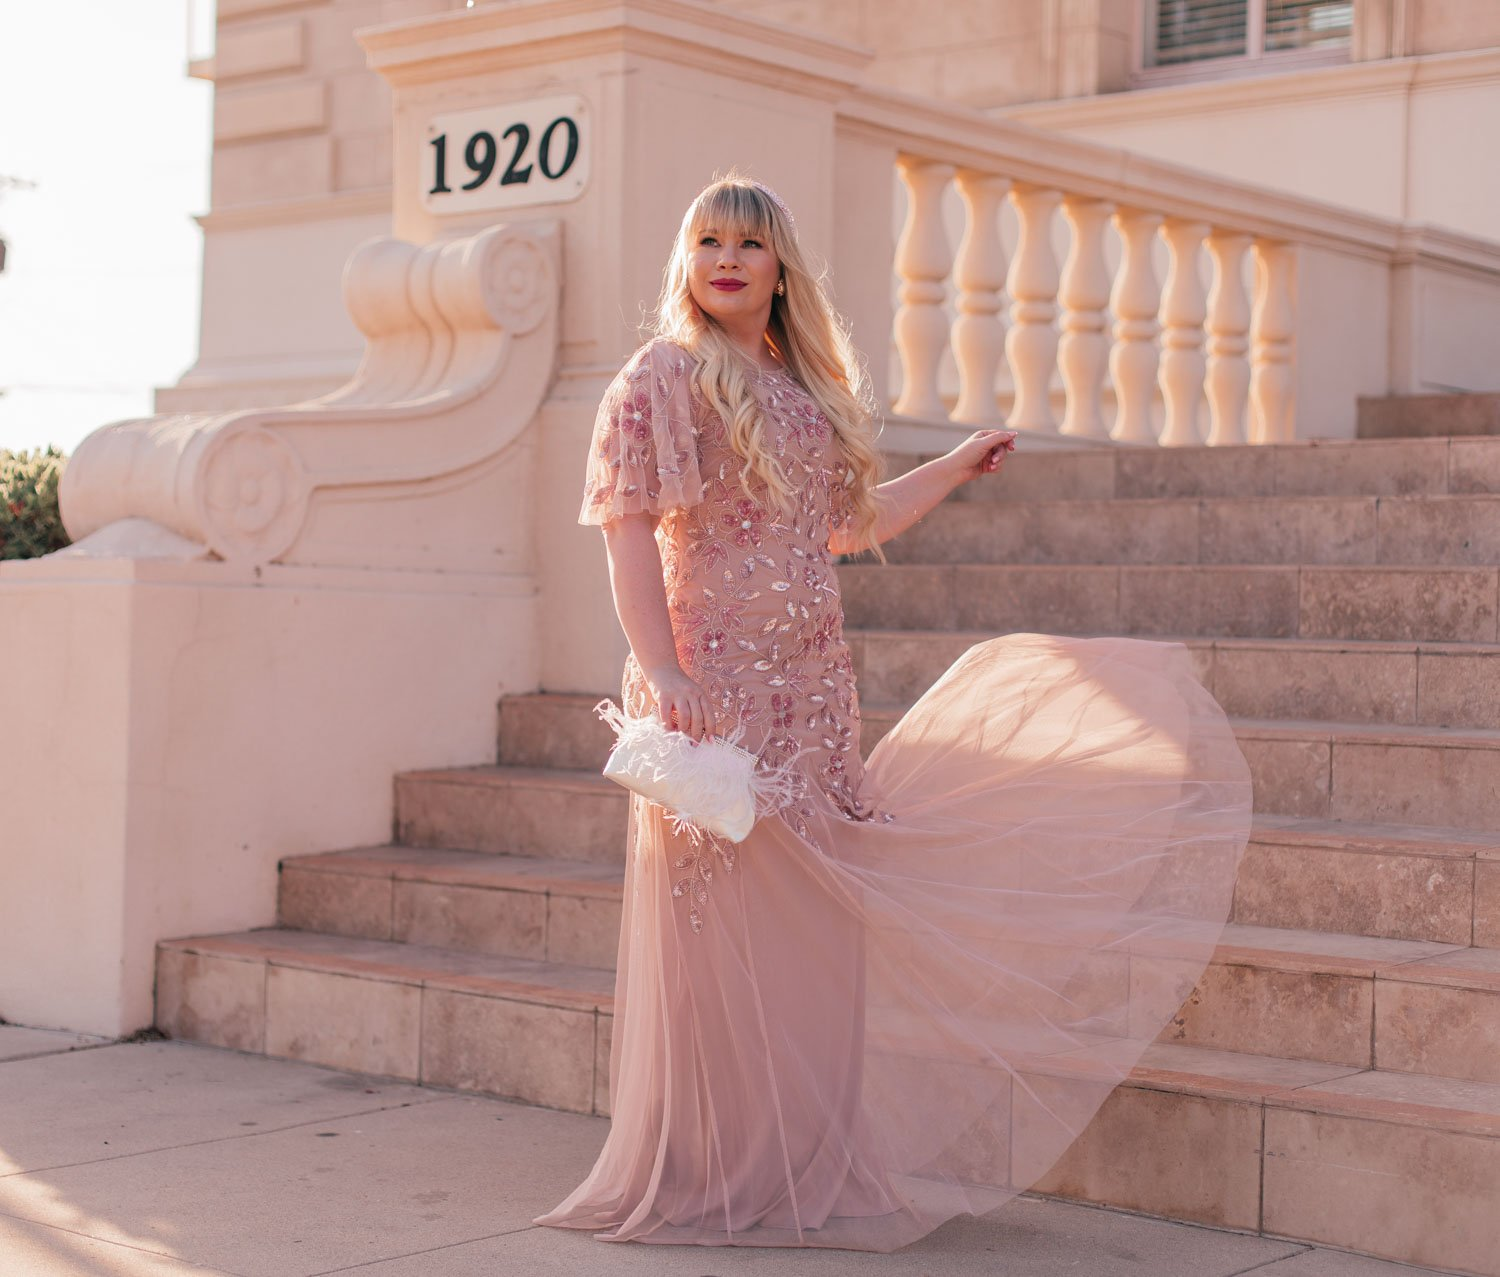 Feminine Fashion Blogger Elizabeth Hugen of Lizzie in Lace shares her favorite Summer Wedding Guest Dresses including this gorgeous pink Adrianna Papell dress